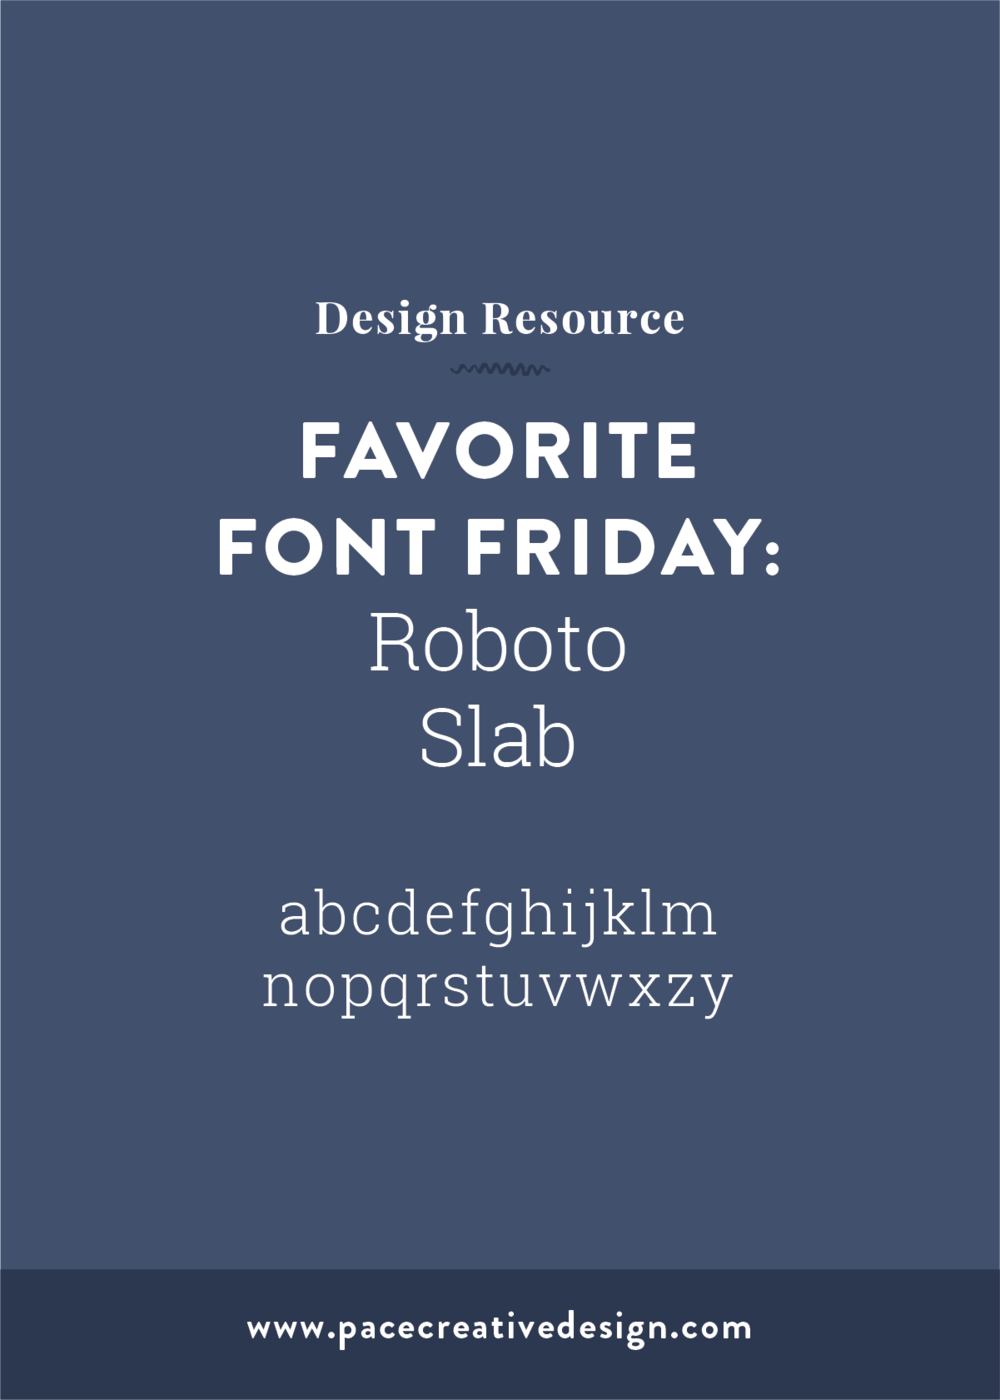 Favorite Font Friday No. 2 – Roboto Slab | Pace Creative Design Studio